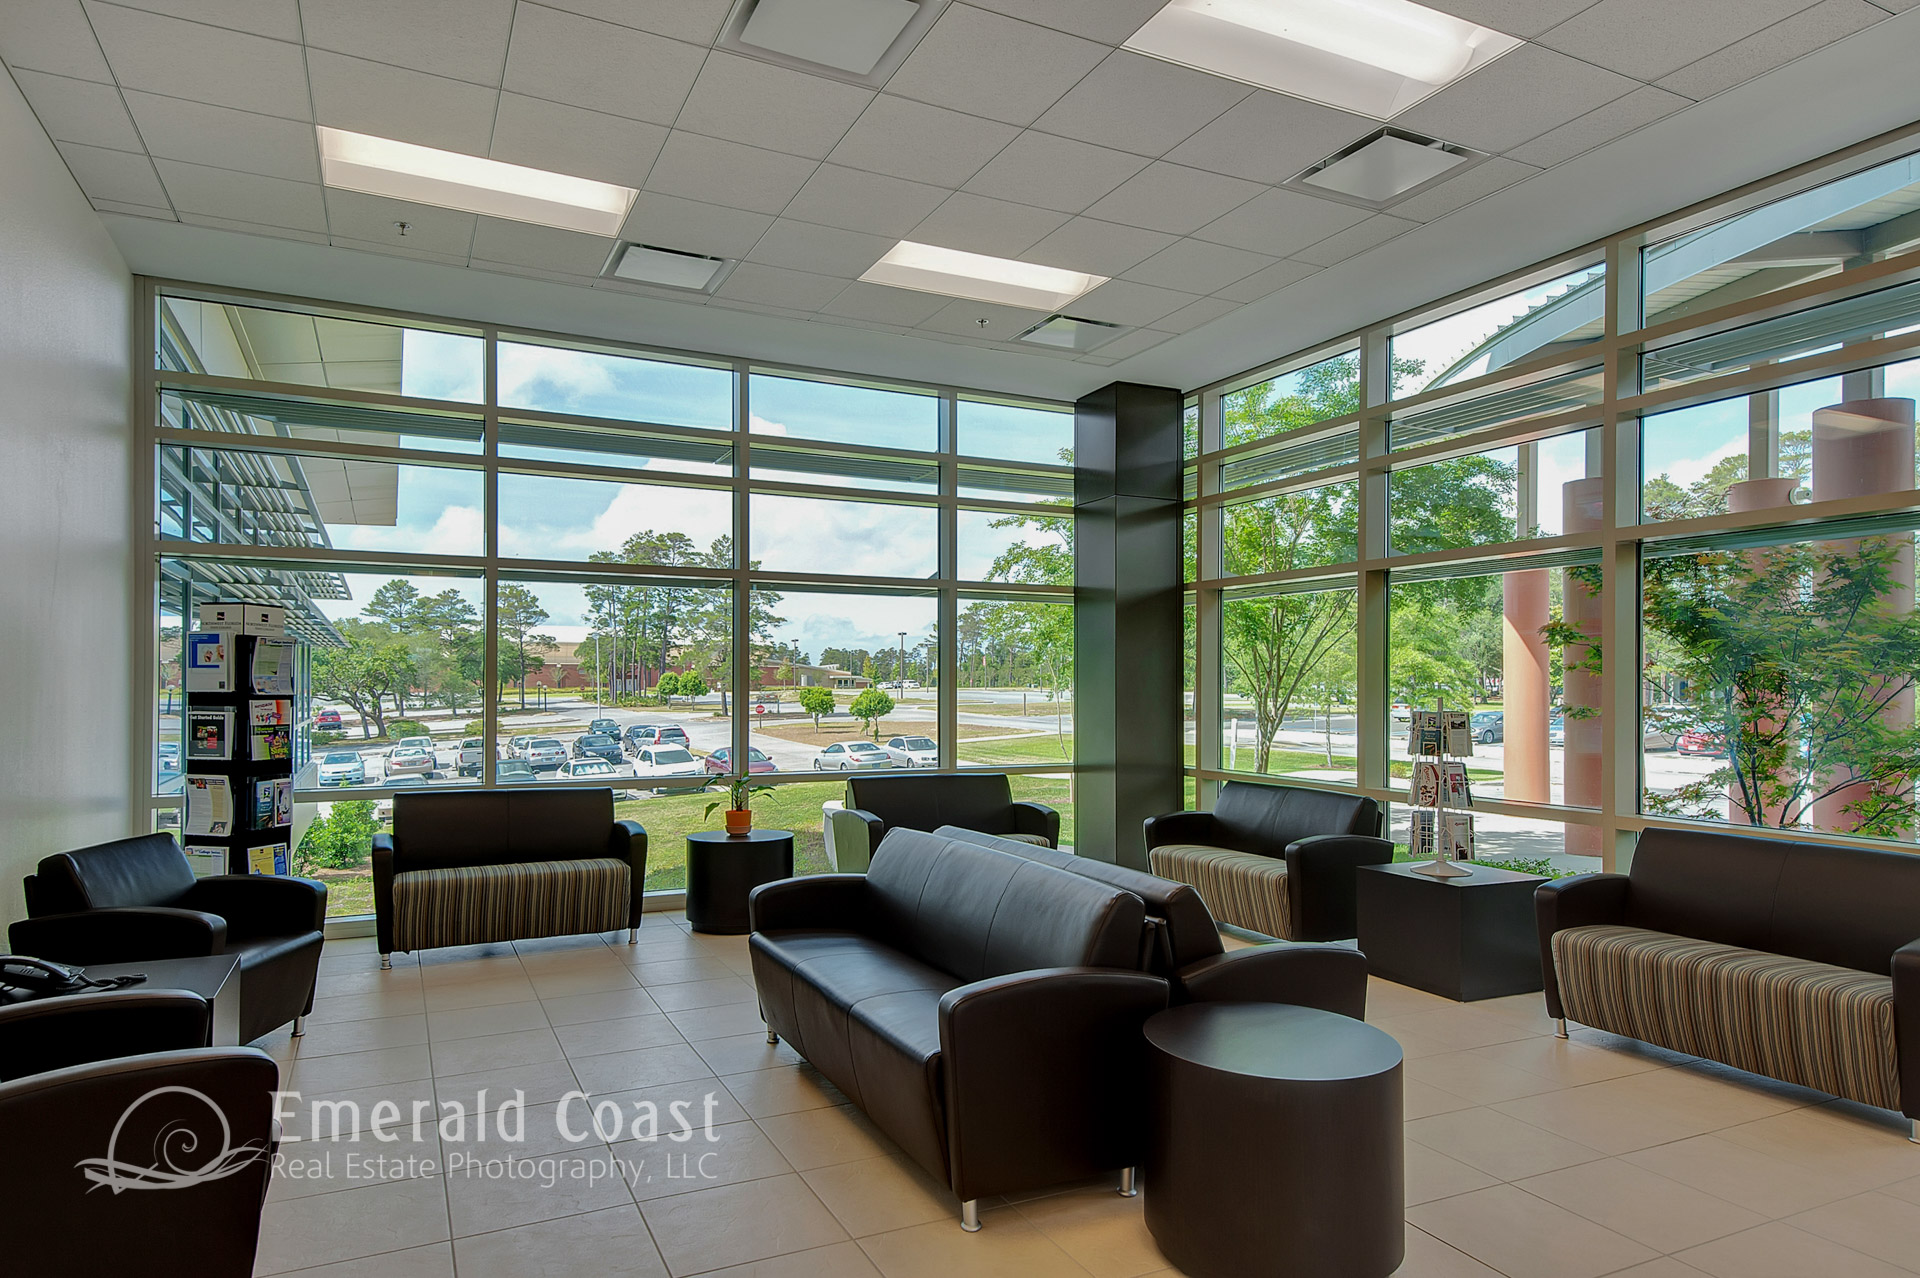 NW Florida State Student Life Center Lobby